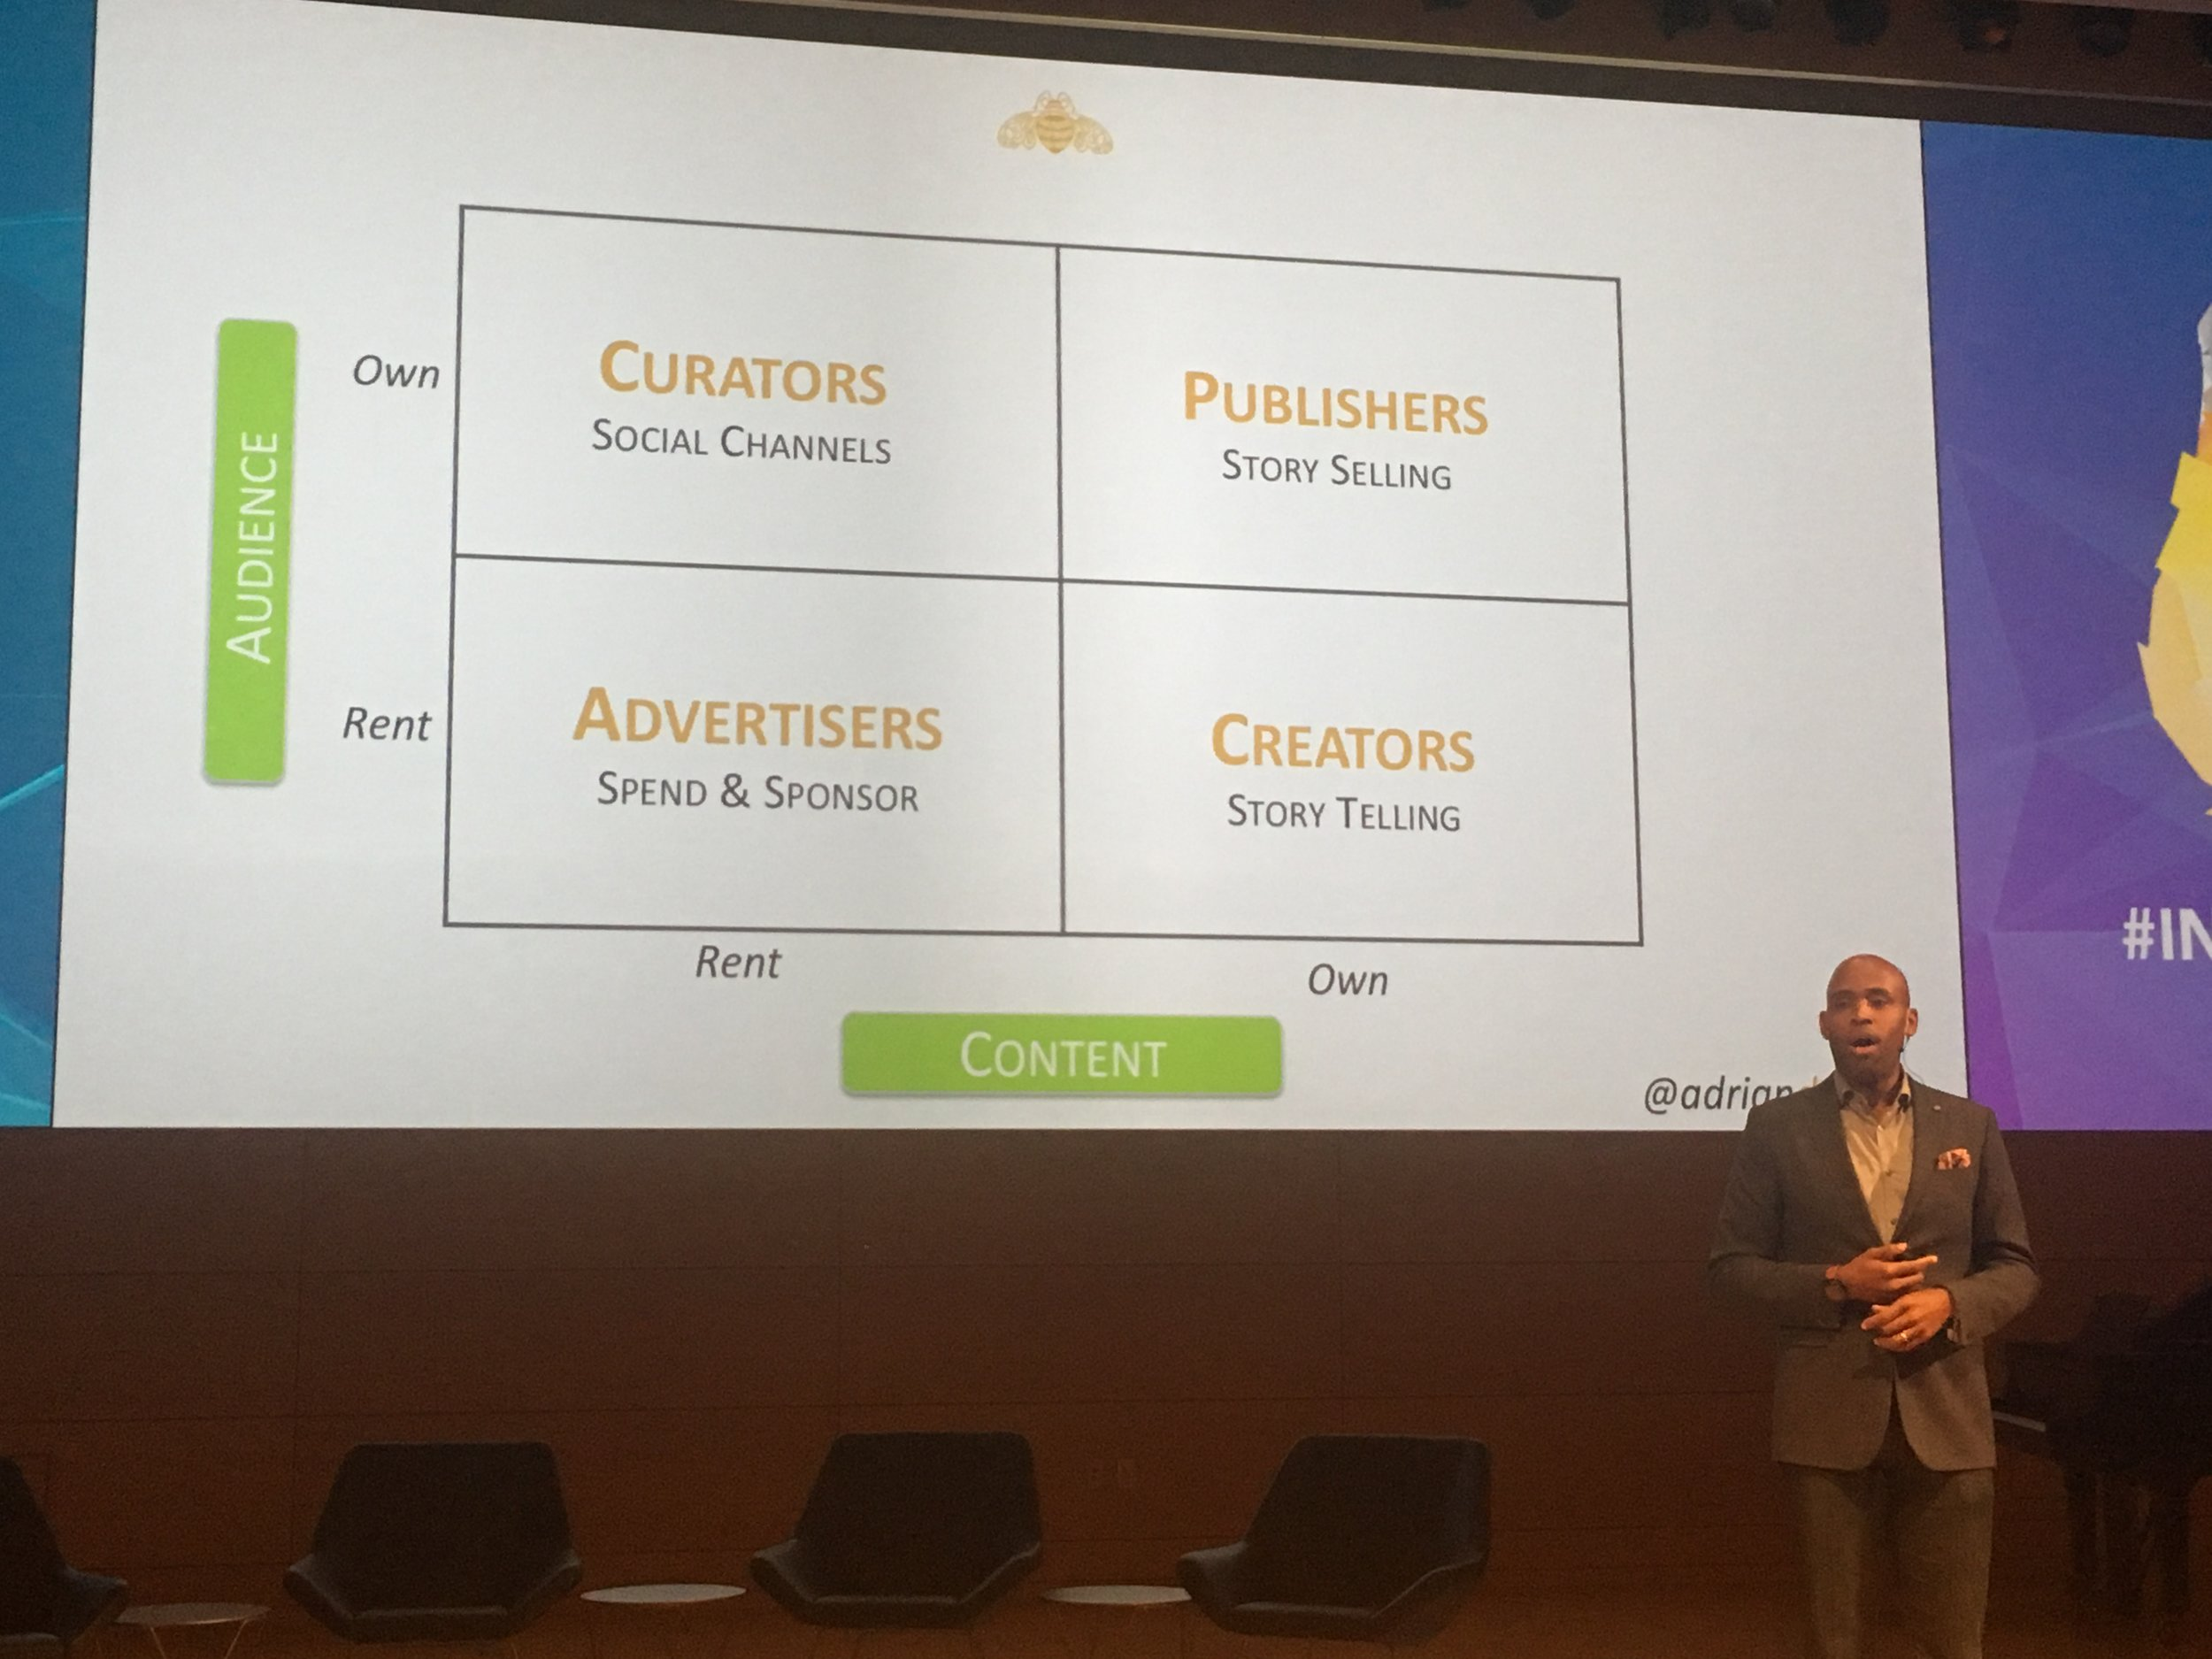 The various content business models - curators, publishers, advertisers and creators.